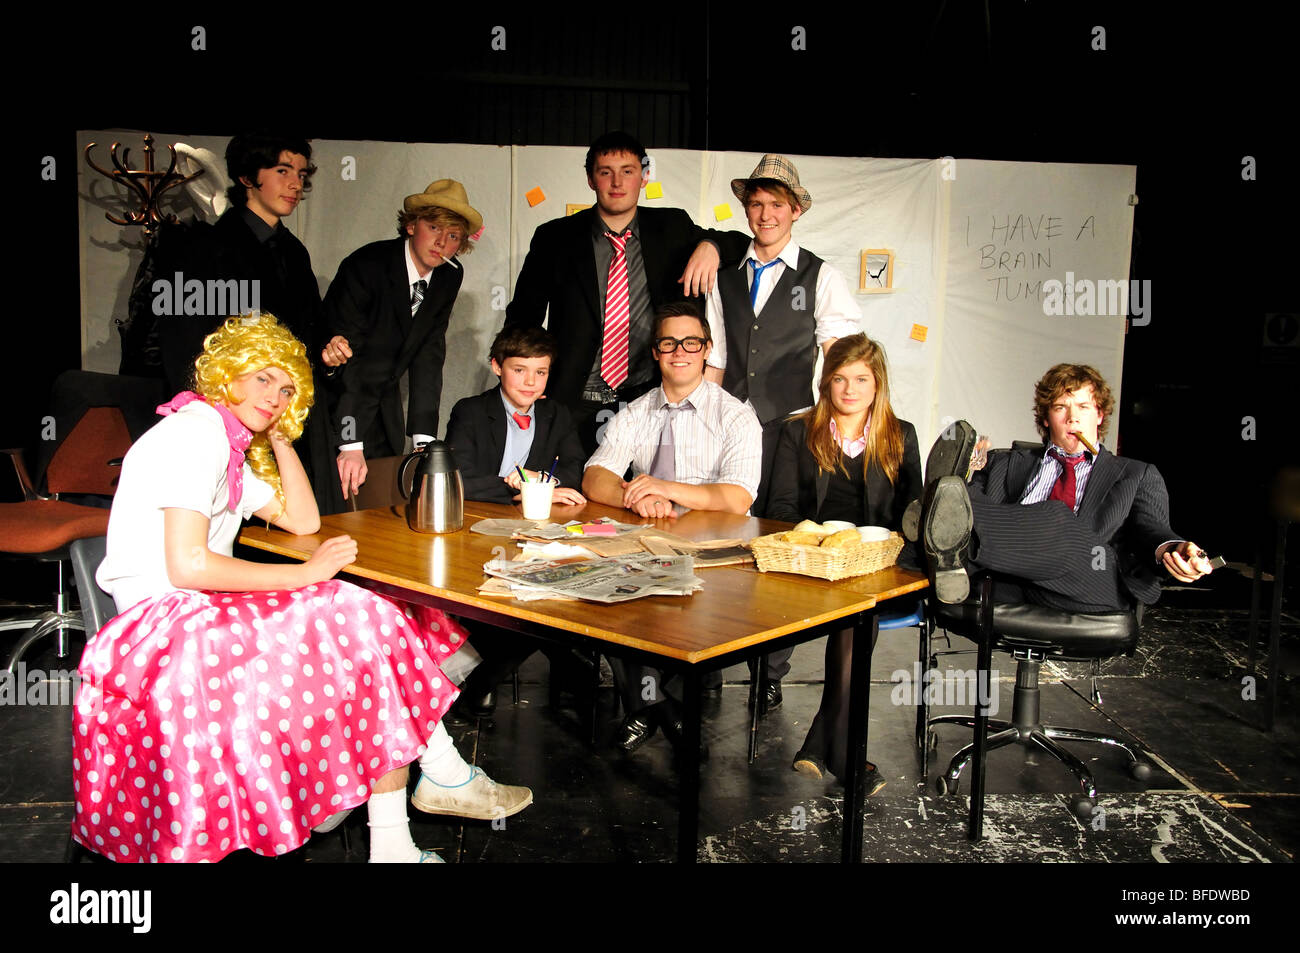 Secondary school play, Bradfield School, Bradfield, Berkshire, England, United Kingdom - Stock Image